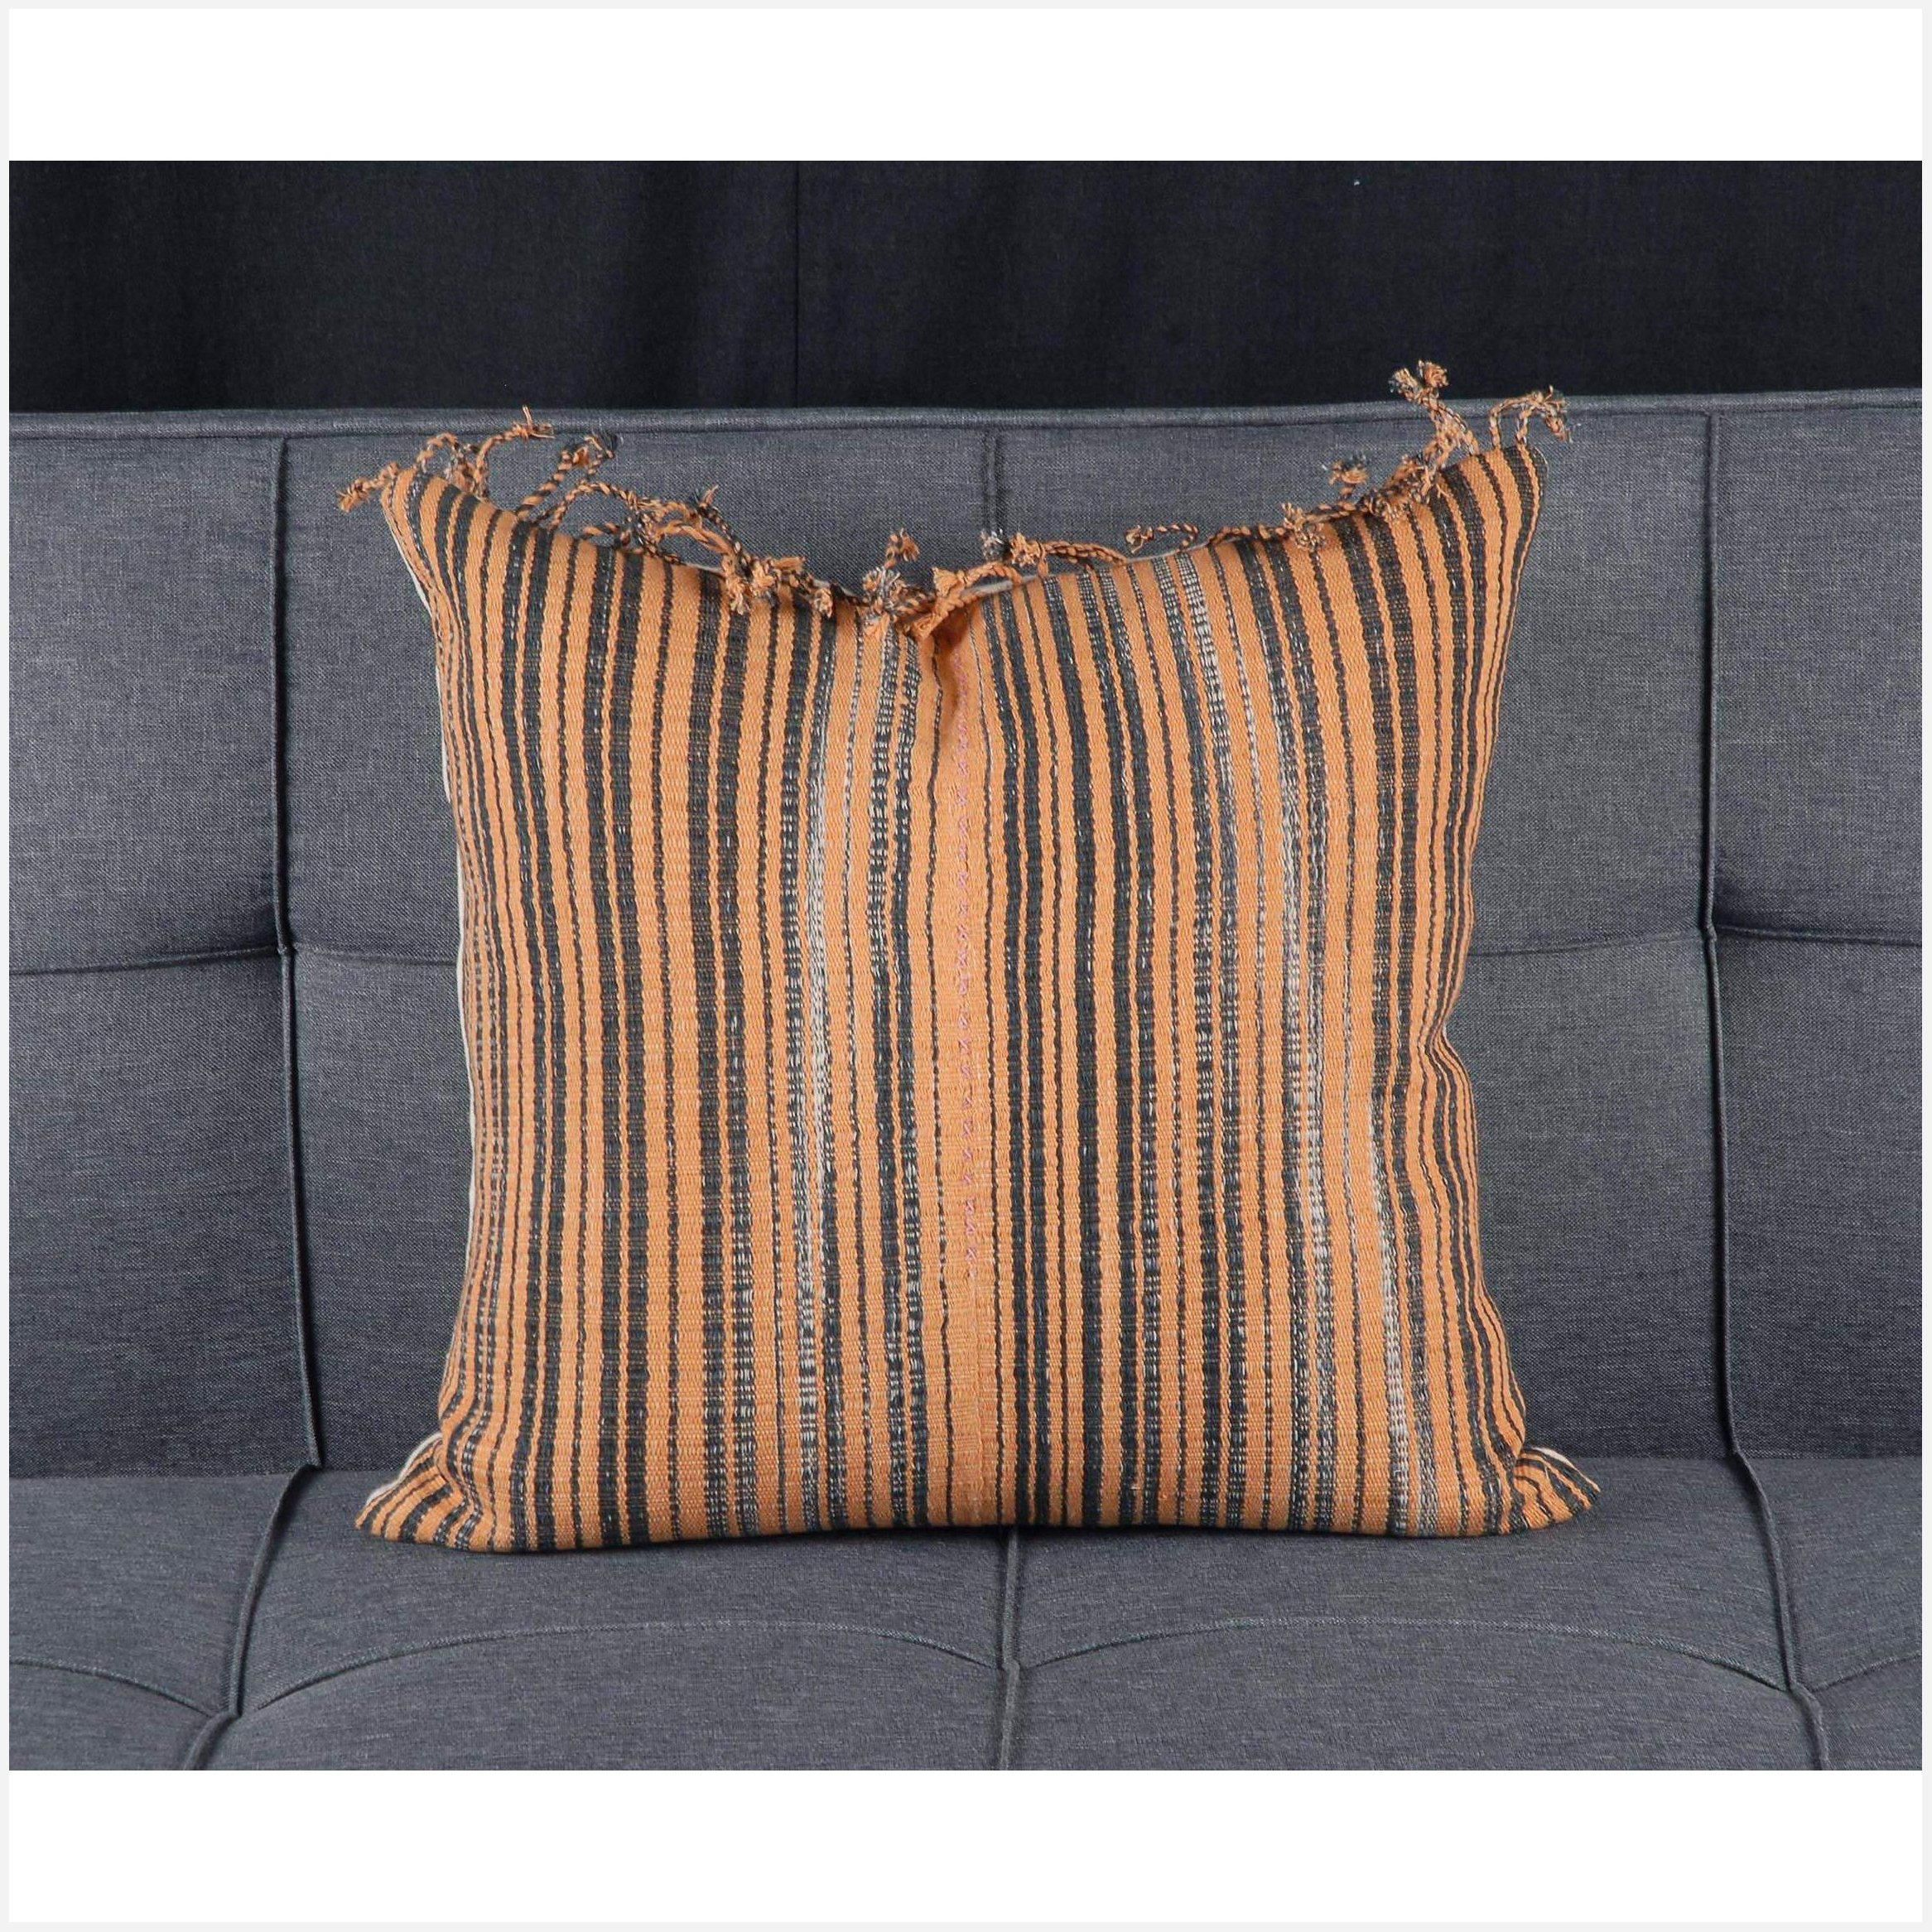 Karen Hmong fabric ethnic throw cushion tribal decorative square pillow 19 in hand woven cotton orange black natural organic dye tassel SD48